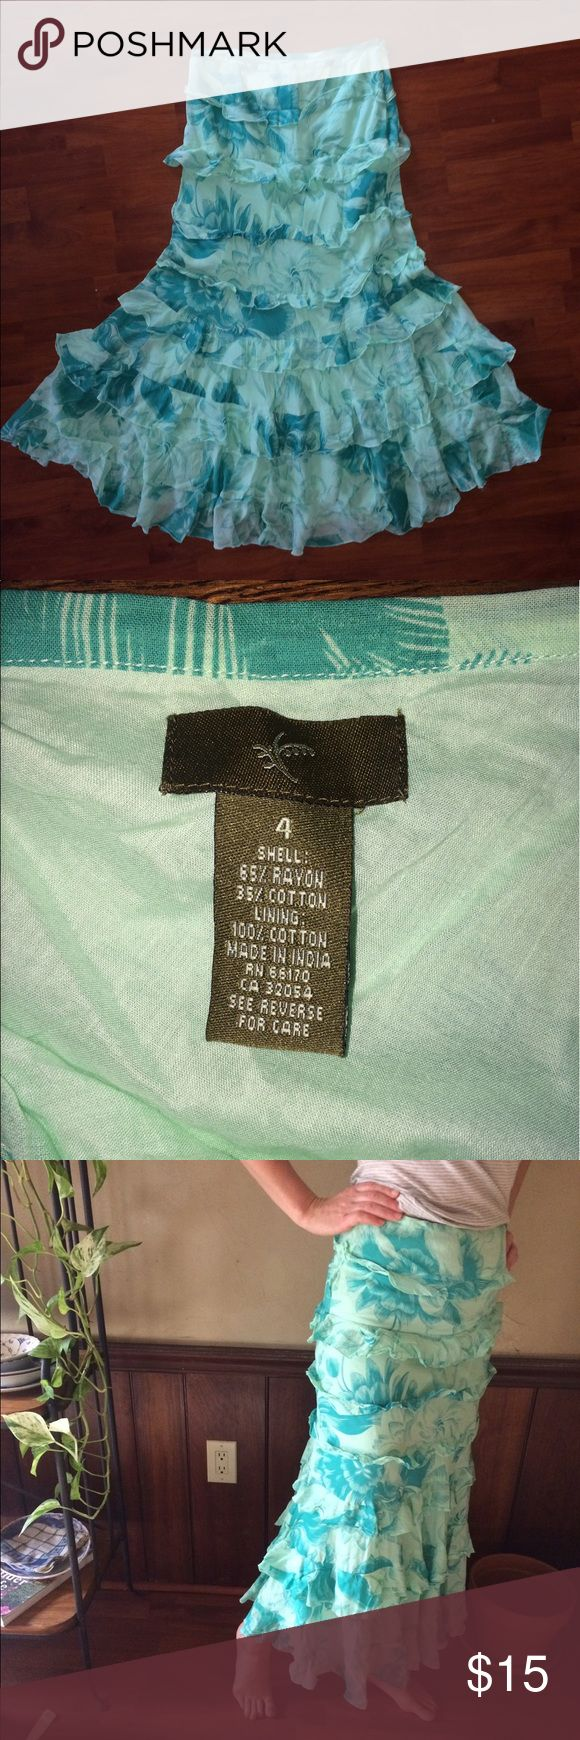 """Anthropologie Long Ruffled Tiered Skirt Fei from Anthropologie. Very good used condition. Lined the entire length. Side zipper. I am 5 feet 8"""" and 140 pounds for reference. I can't fully zip this anymore as I've gained too much weight. Really cute skirt. Sea foam green and subdued teal blue combination. Anthropologie Skirts Maxi"""